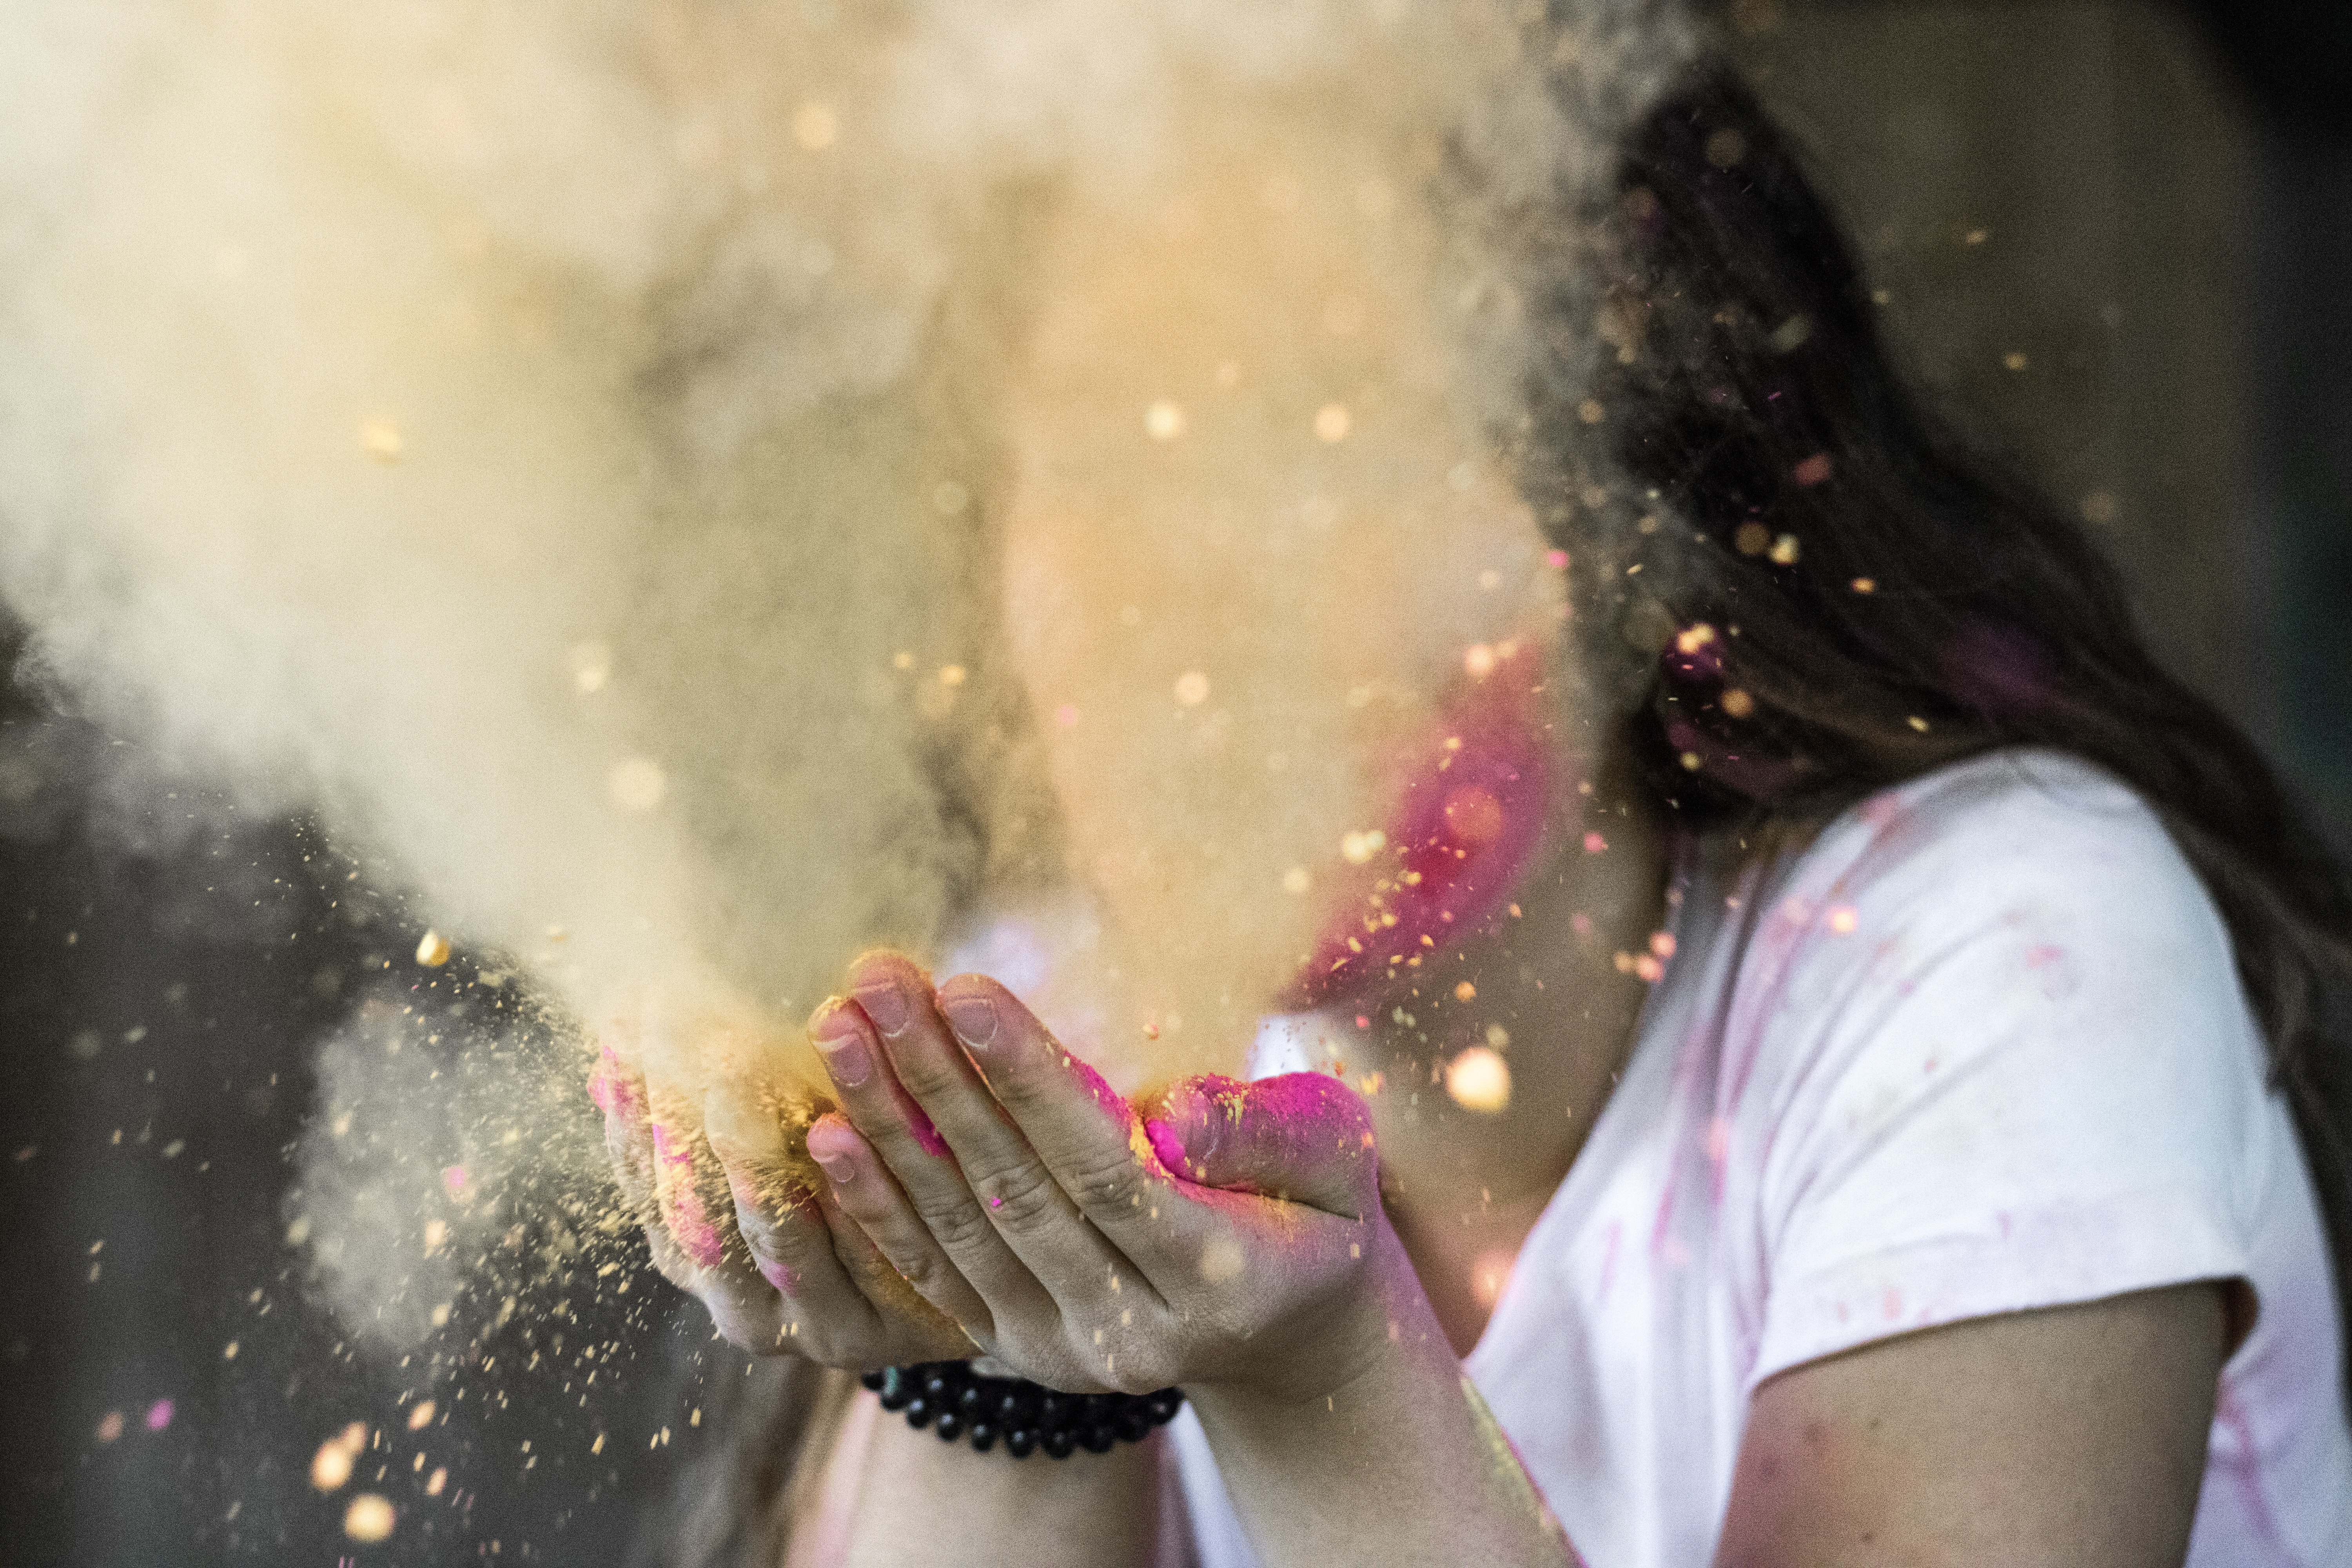 Woman in white cap-sleeved shirt blowing dust photo